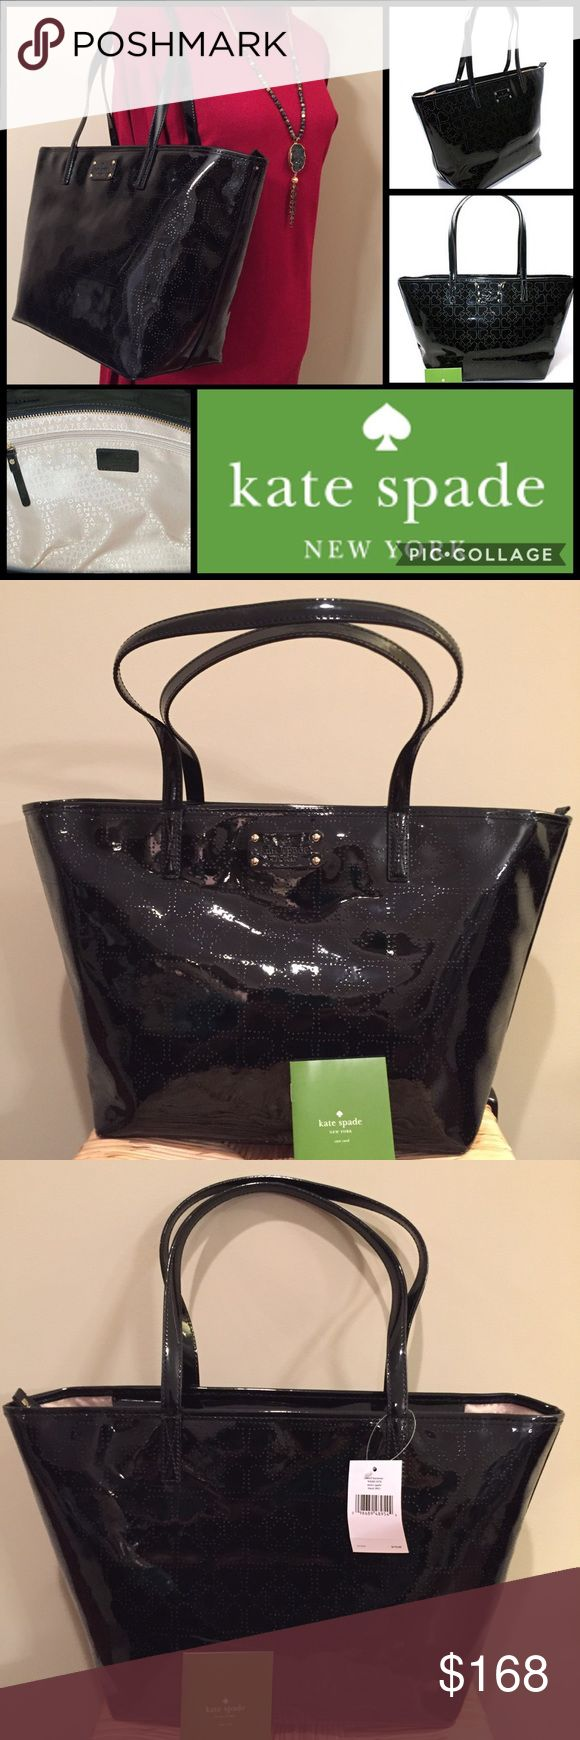 "🆕🎁 KATE SPADE Black Patent Shoulder Bag Tote NWT KATE SPADE Black Patent Harmony Metro Spade Shoulder Bag Tote New With Tags  MSRP: $178.00  Exterior Features Subtle Laser Perforated Signature Spade Pattern & Logo Plaque  Interior Features Signature Lining, One Zip Pocket With Logo Plaque & Two Slip Pockets Measures Approximately 11.5"" (L) At Bottom, Increasing To 16.5"" At Top 10""(H) x 5.5"" (D) Dual Handles With 8.5"" Drop Zip Top Closure  Includes Care Card  🎁 Great Gift Idea! 🎁 Smoke…"